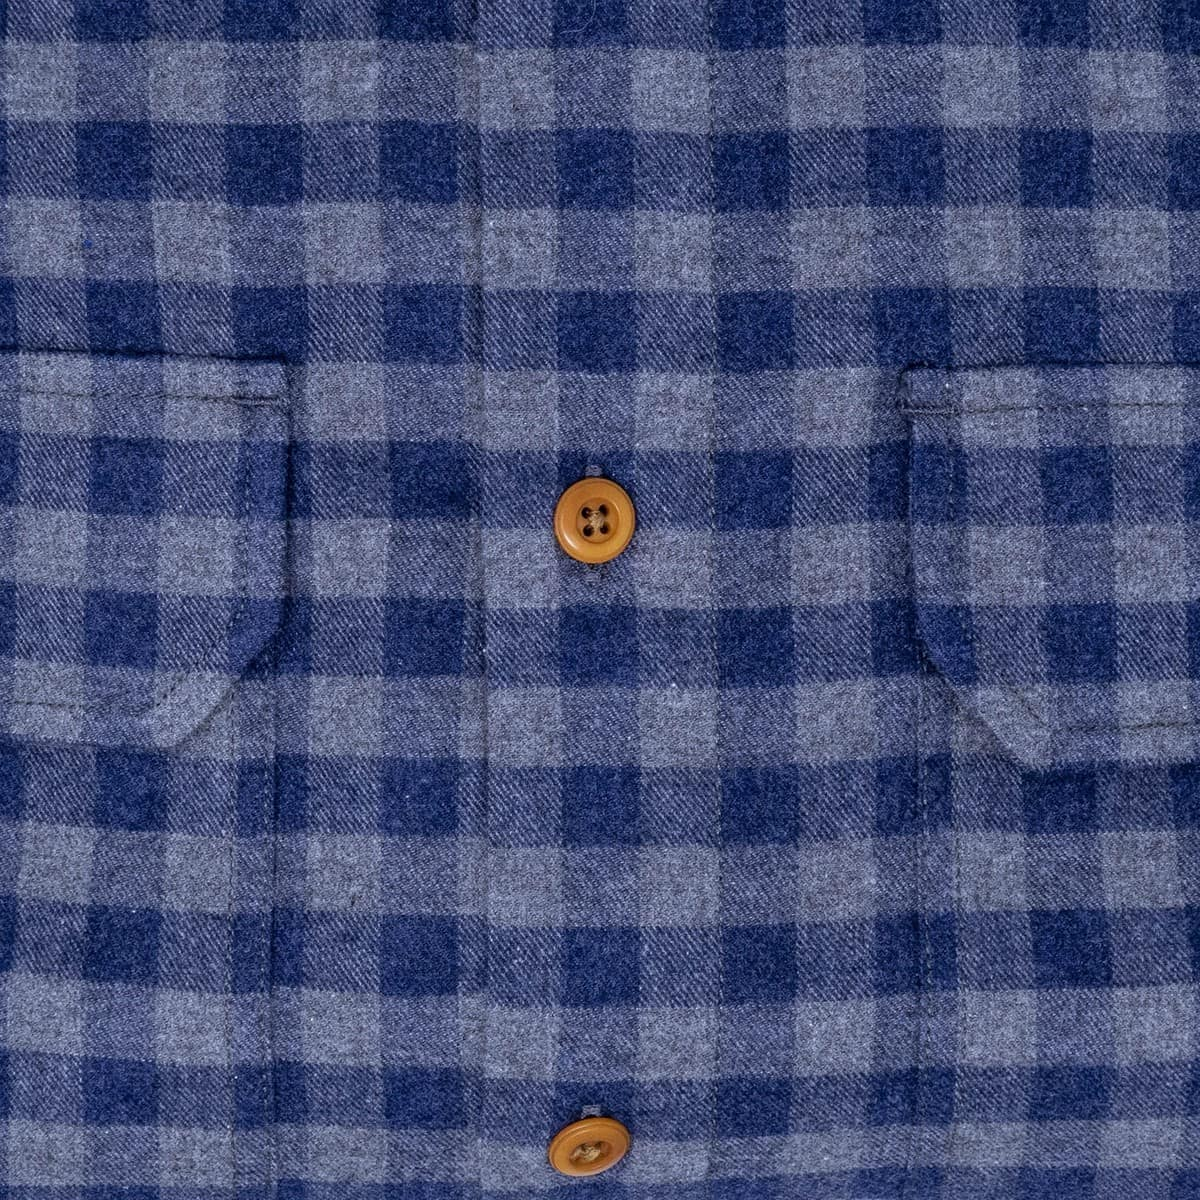 Buy The Bayman's Flannel Shirt- Blue/Gray